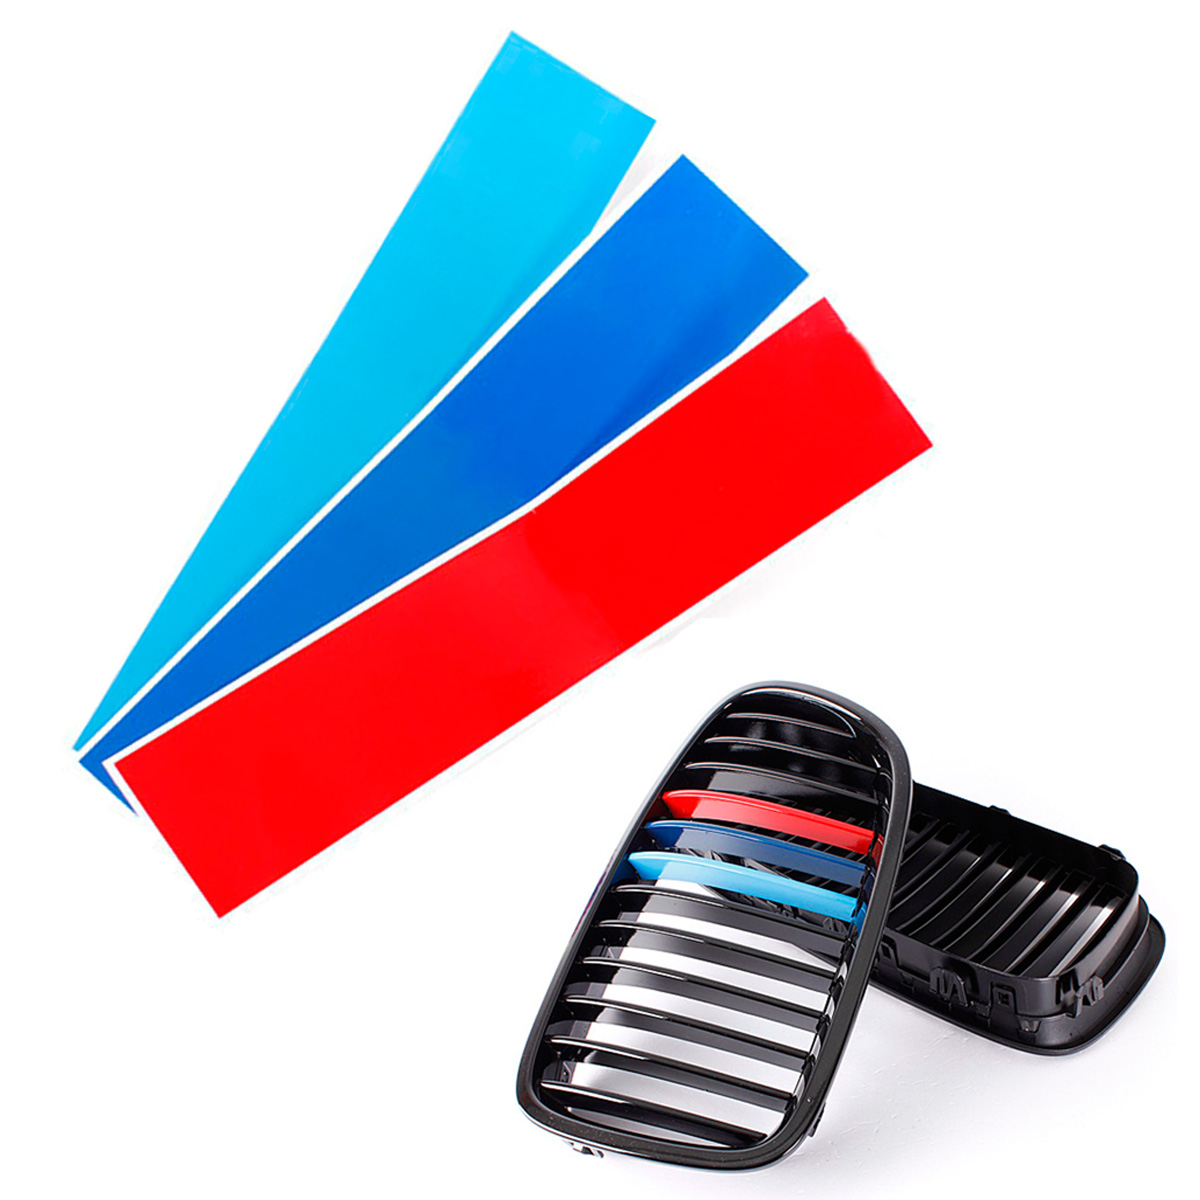 COLOR M GRILLE DECAL STRIP VINYL STICKER FOR BMW M E E E - Bmw grille stripe decals